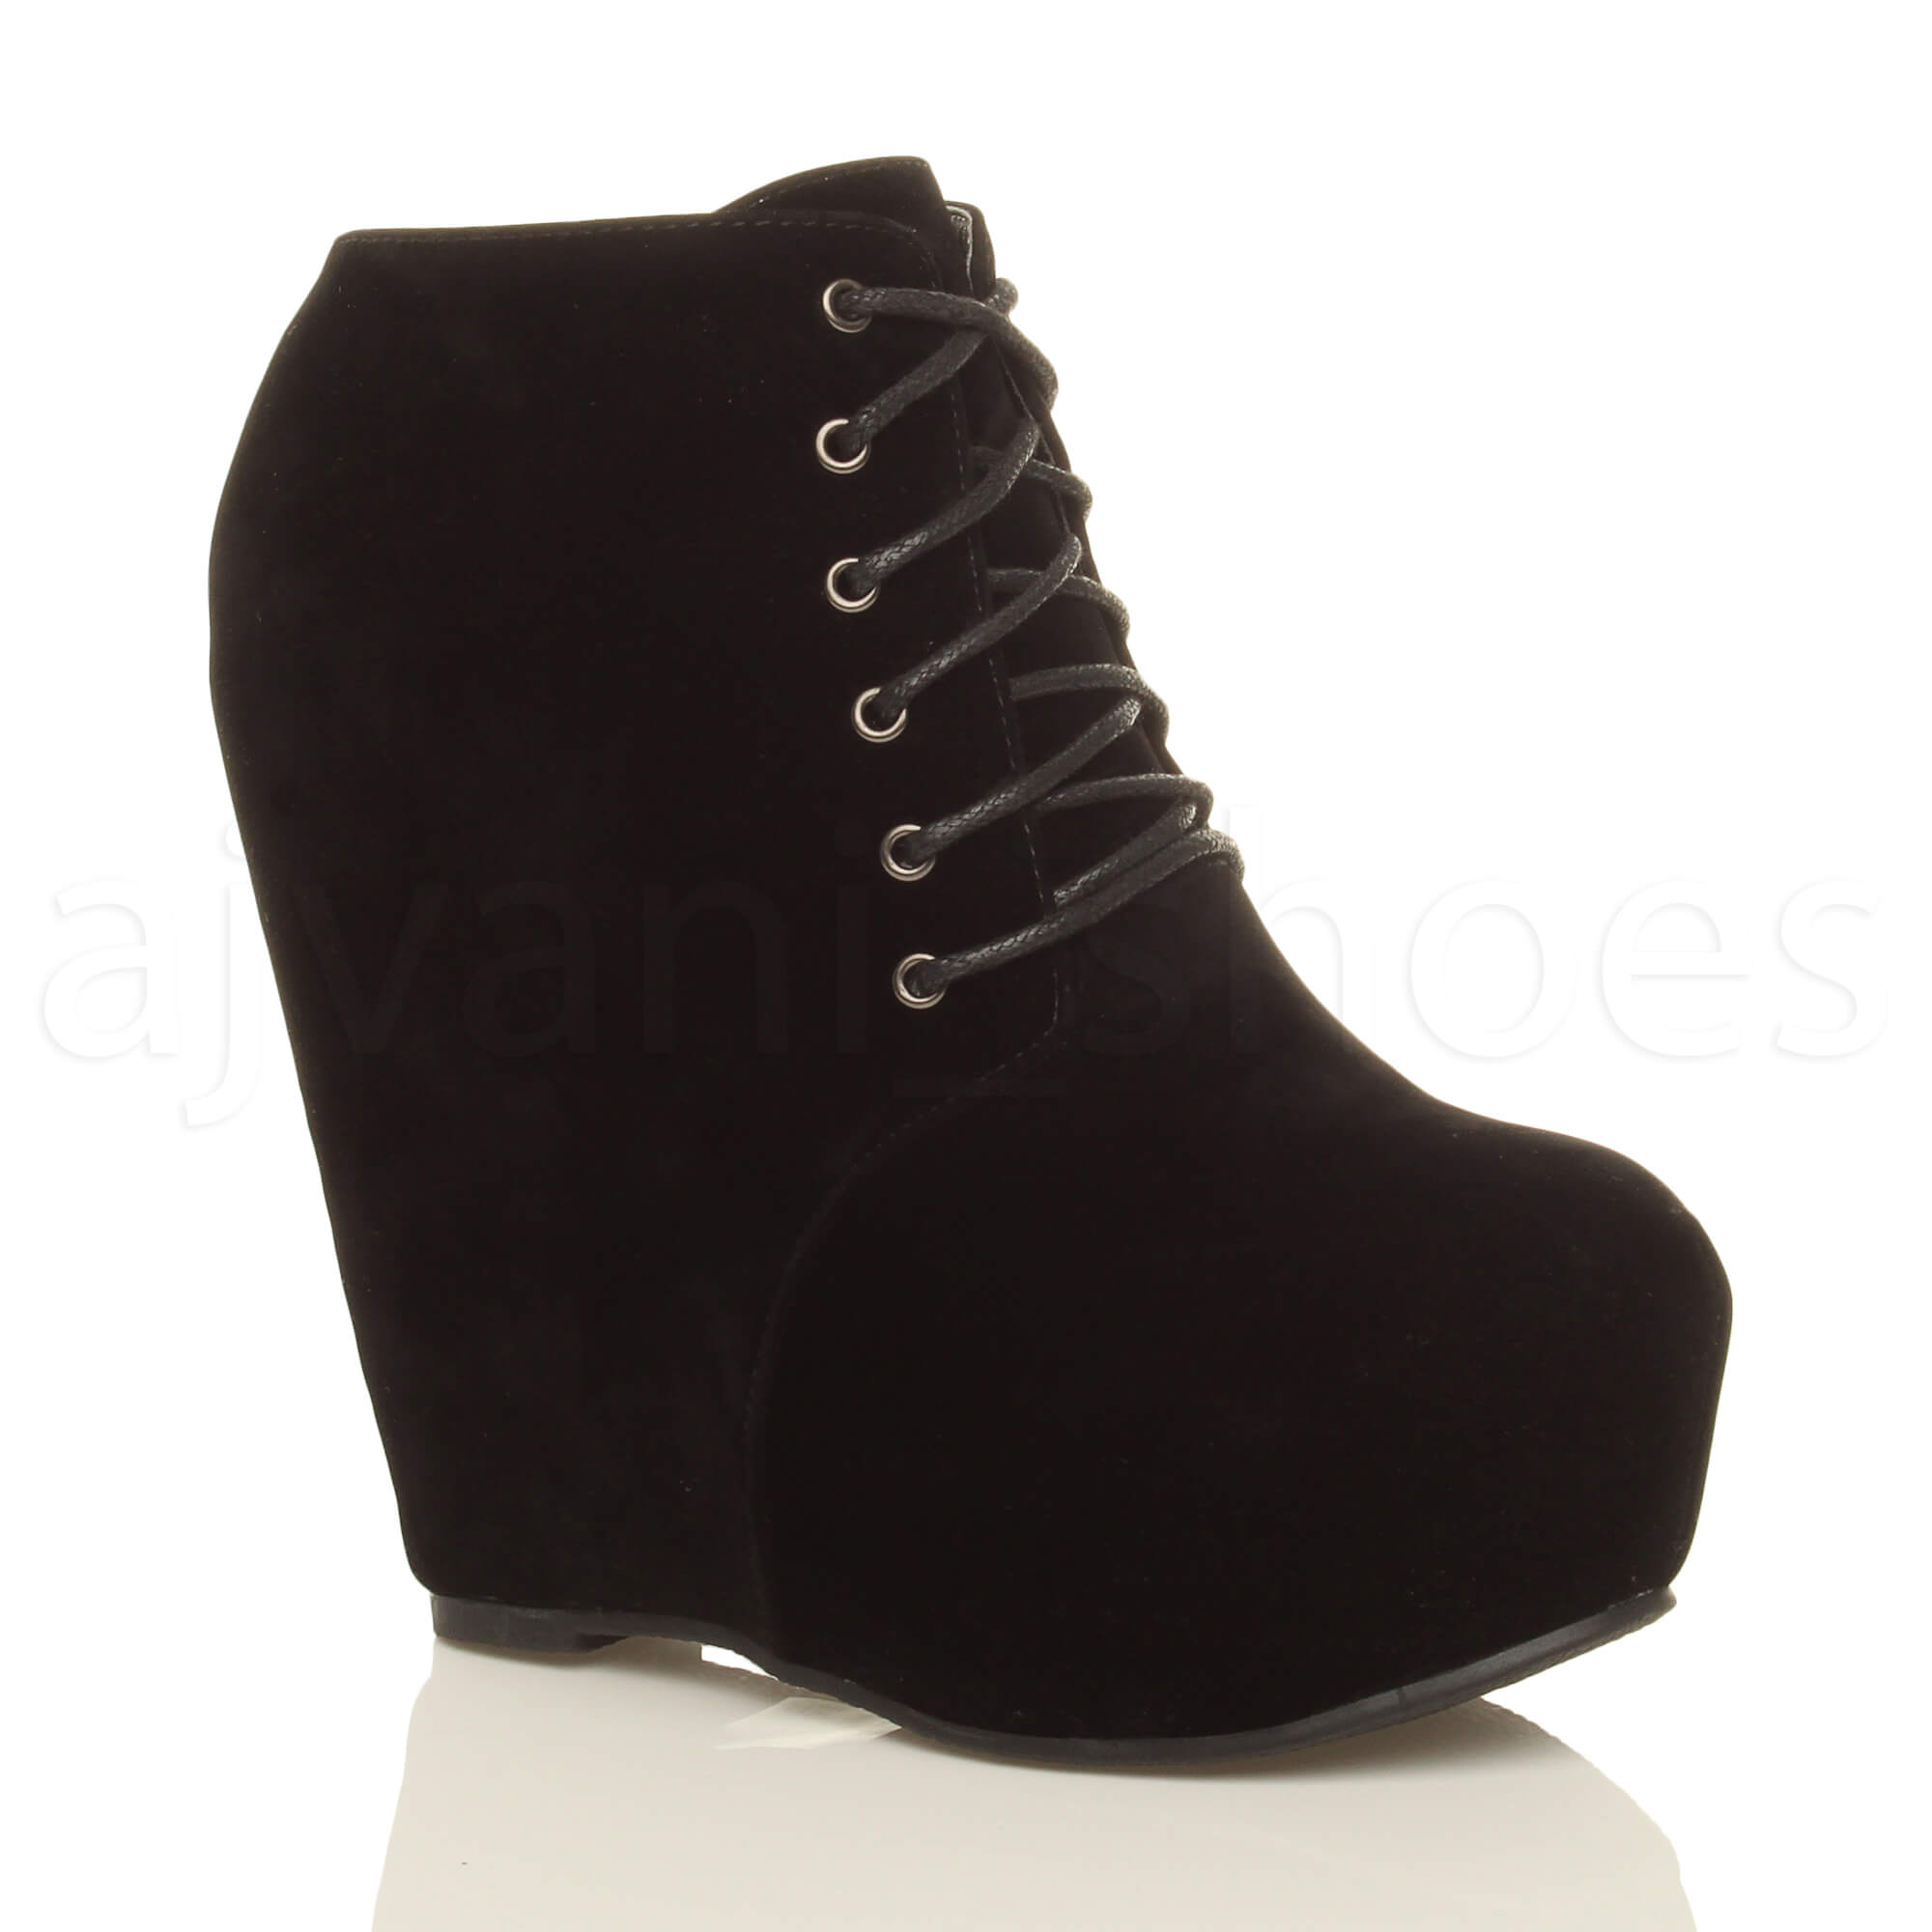 WOMENS-LADIES-HIGH-WEDGE-HEEL-PLATFORM-STUDDED-SPIKED-GOTH-PUNK-ANKLE-BOOTS-SIZE